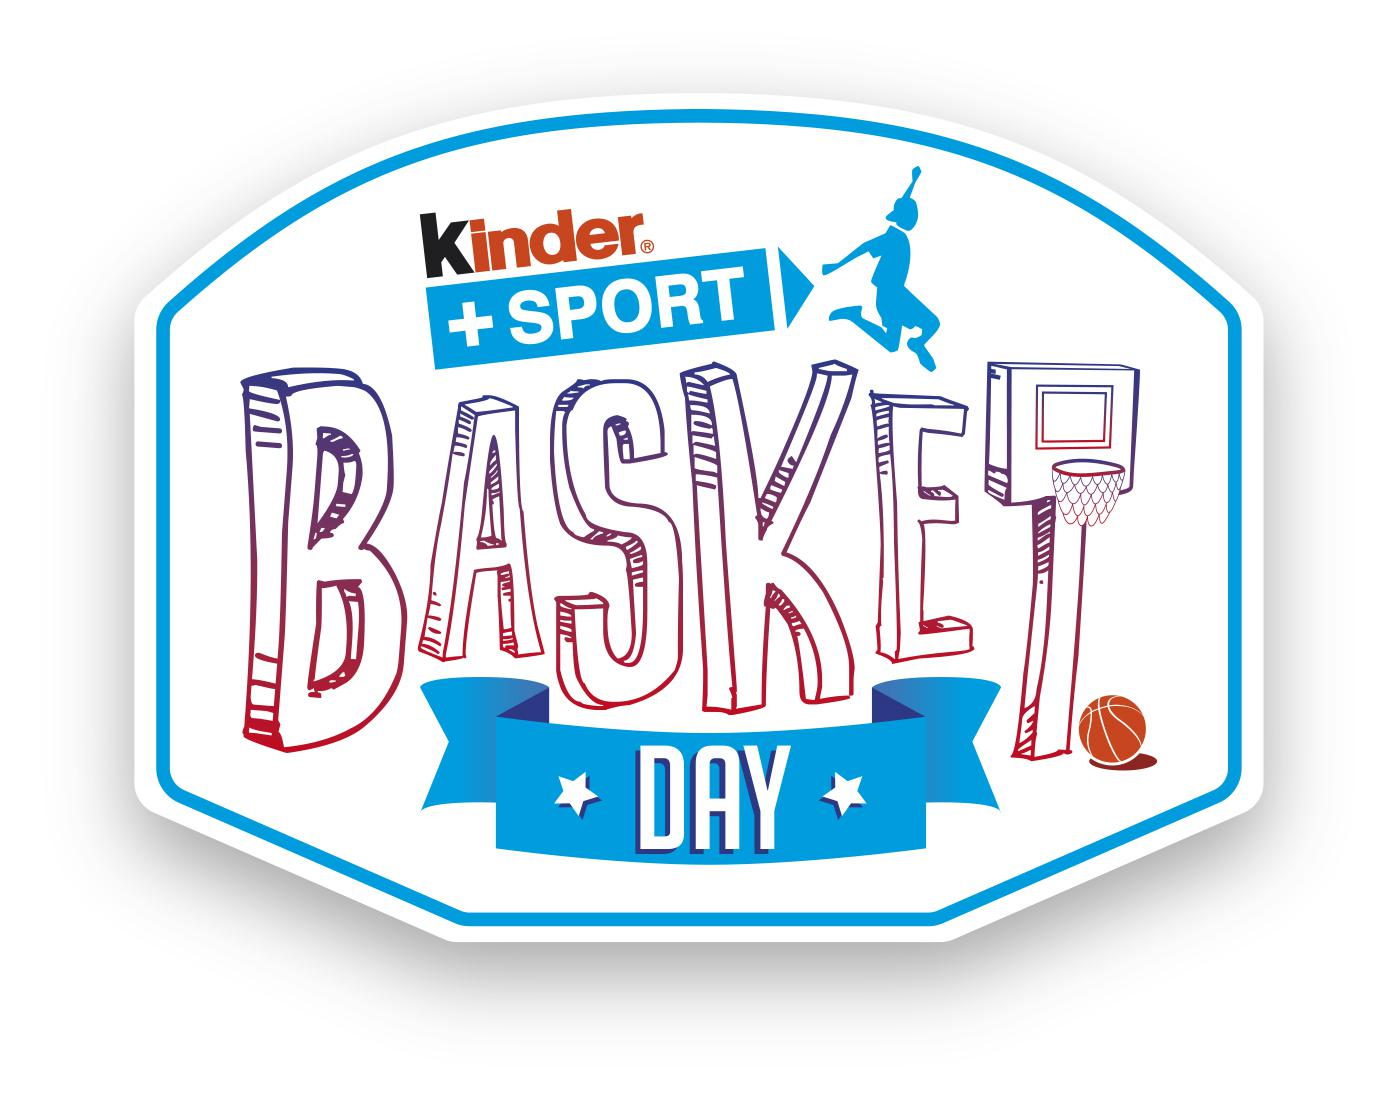 Kinder Basket Day